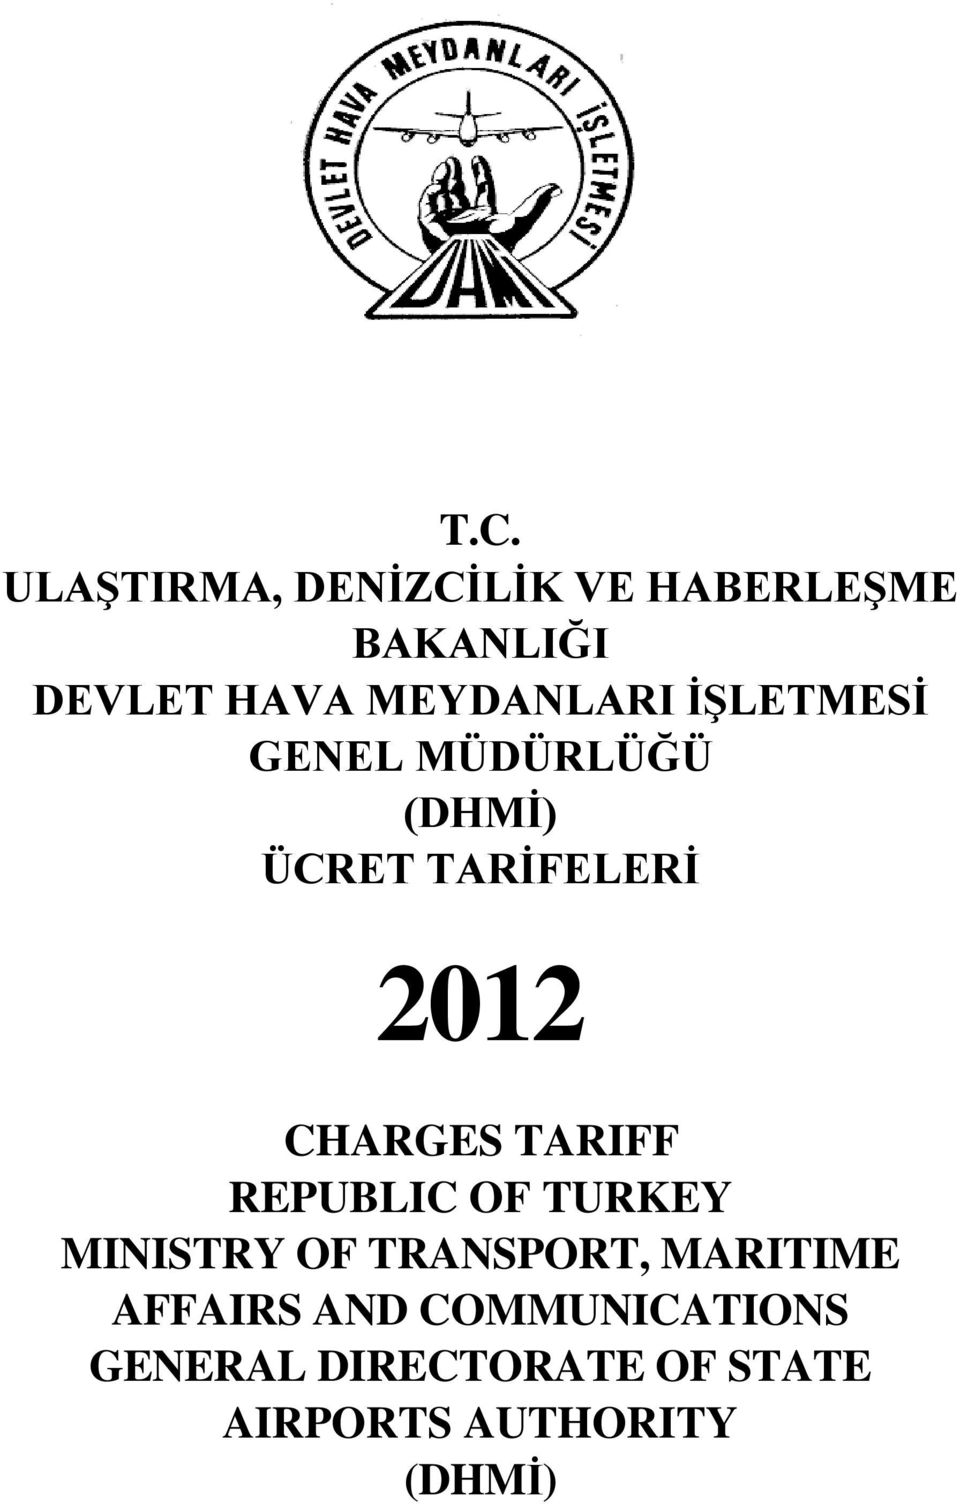 CHARGES TARIFF REPUBLIC OF TURKEY MINISTRY OF TRANSPORT, MARITIME